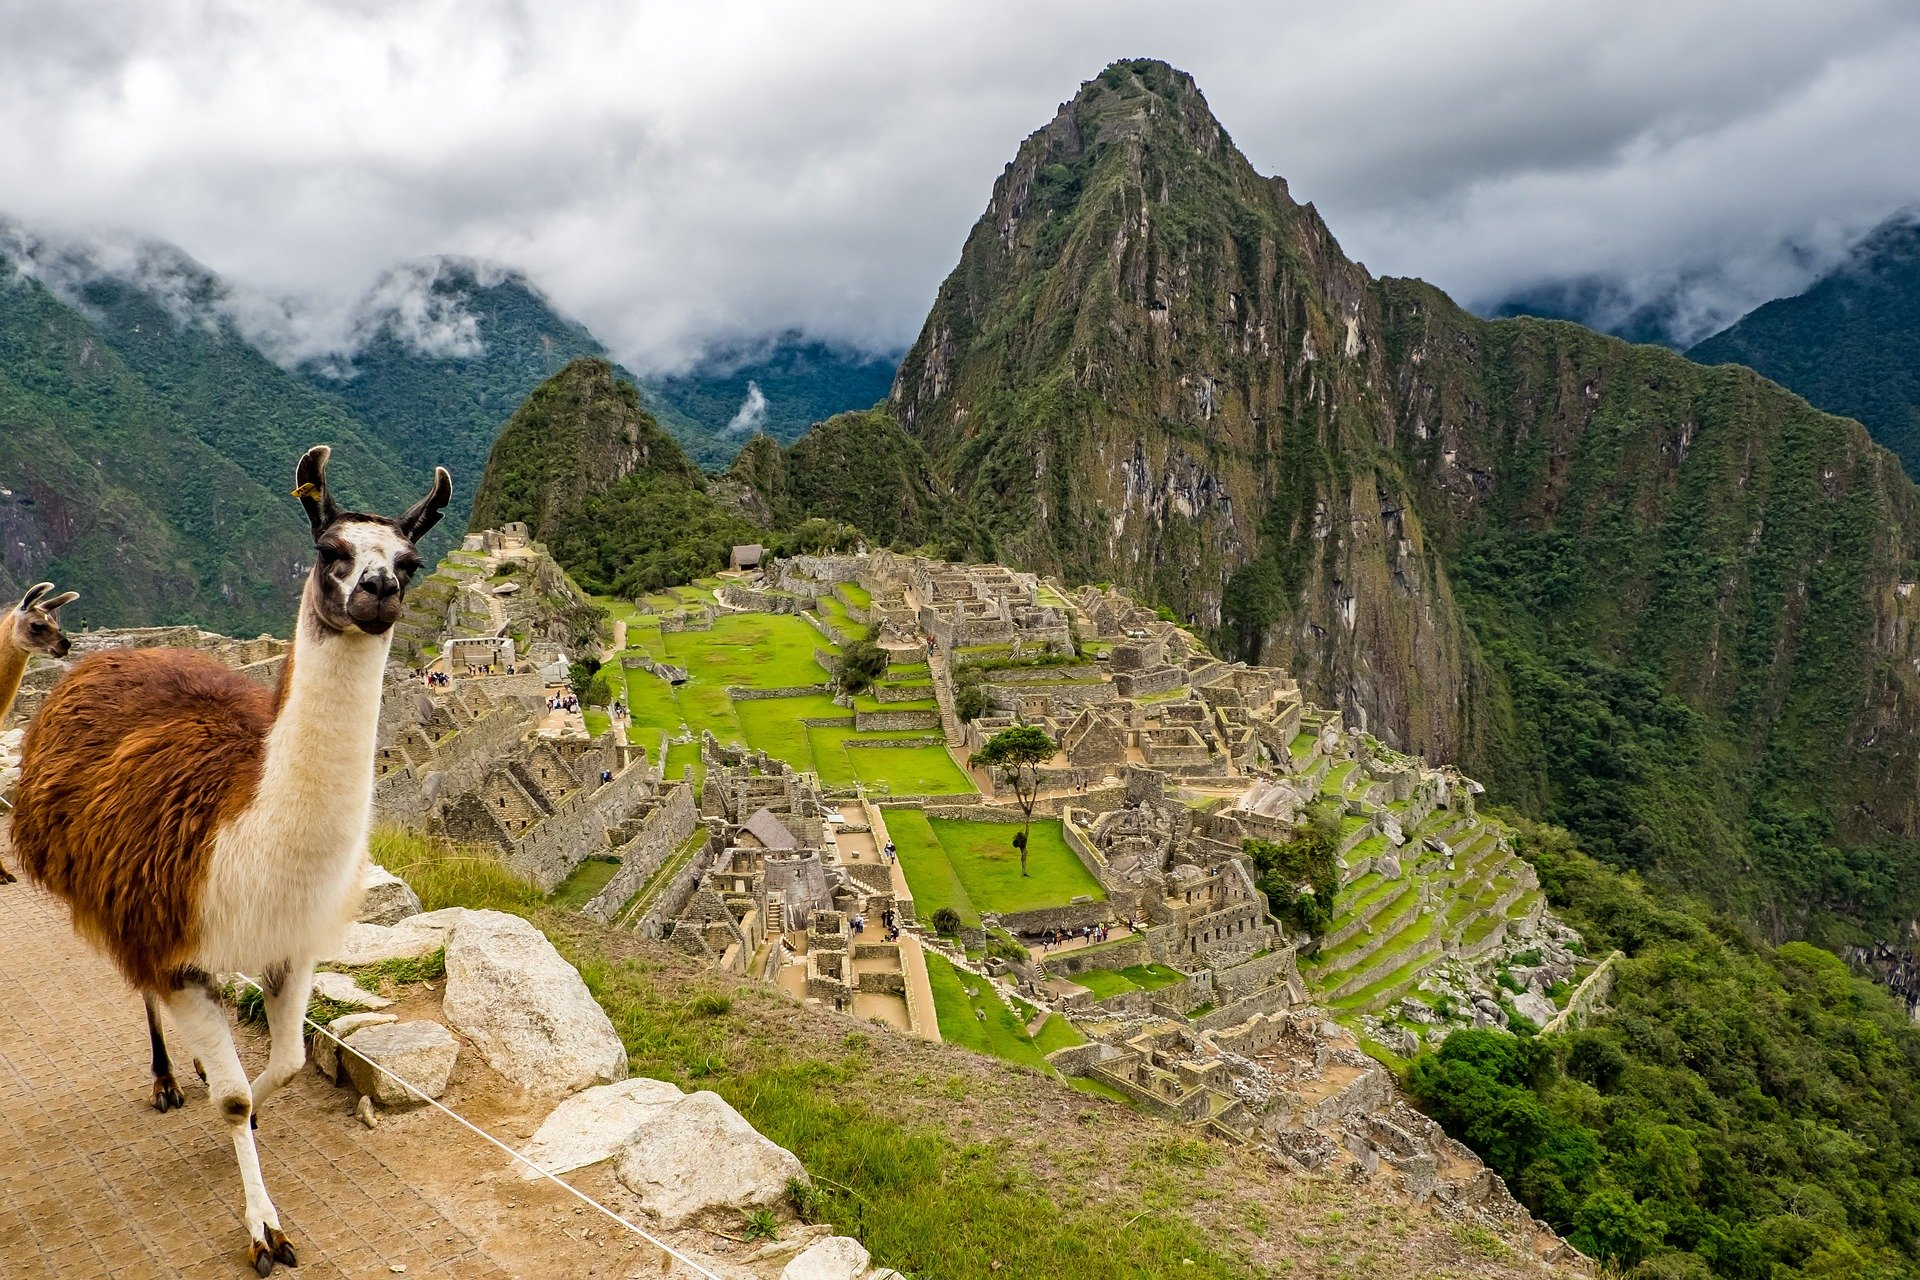 Chalkmarks Machu Picchu to reopen: Peru gets ready to unlock the world heritage site in November